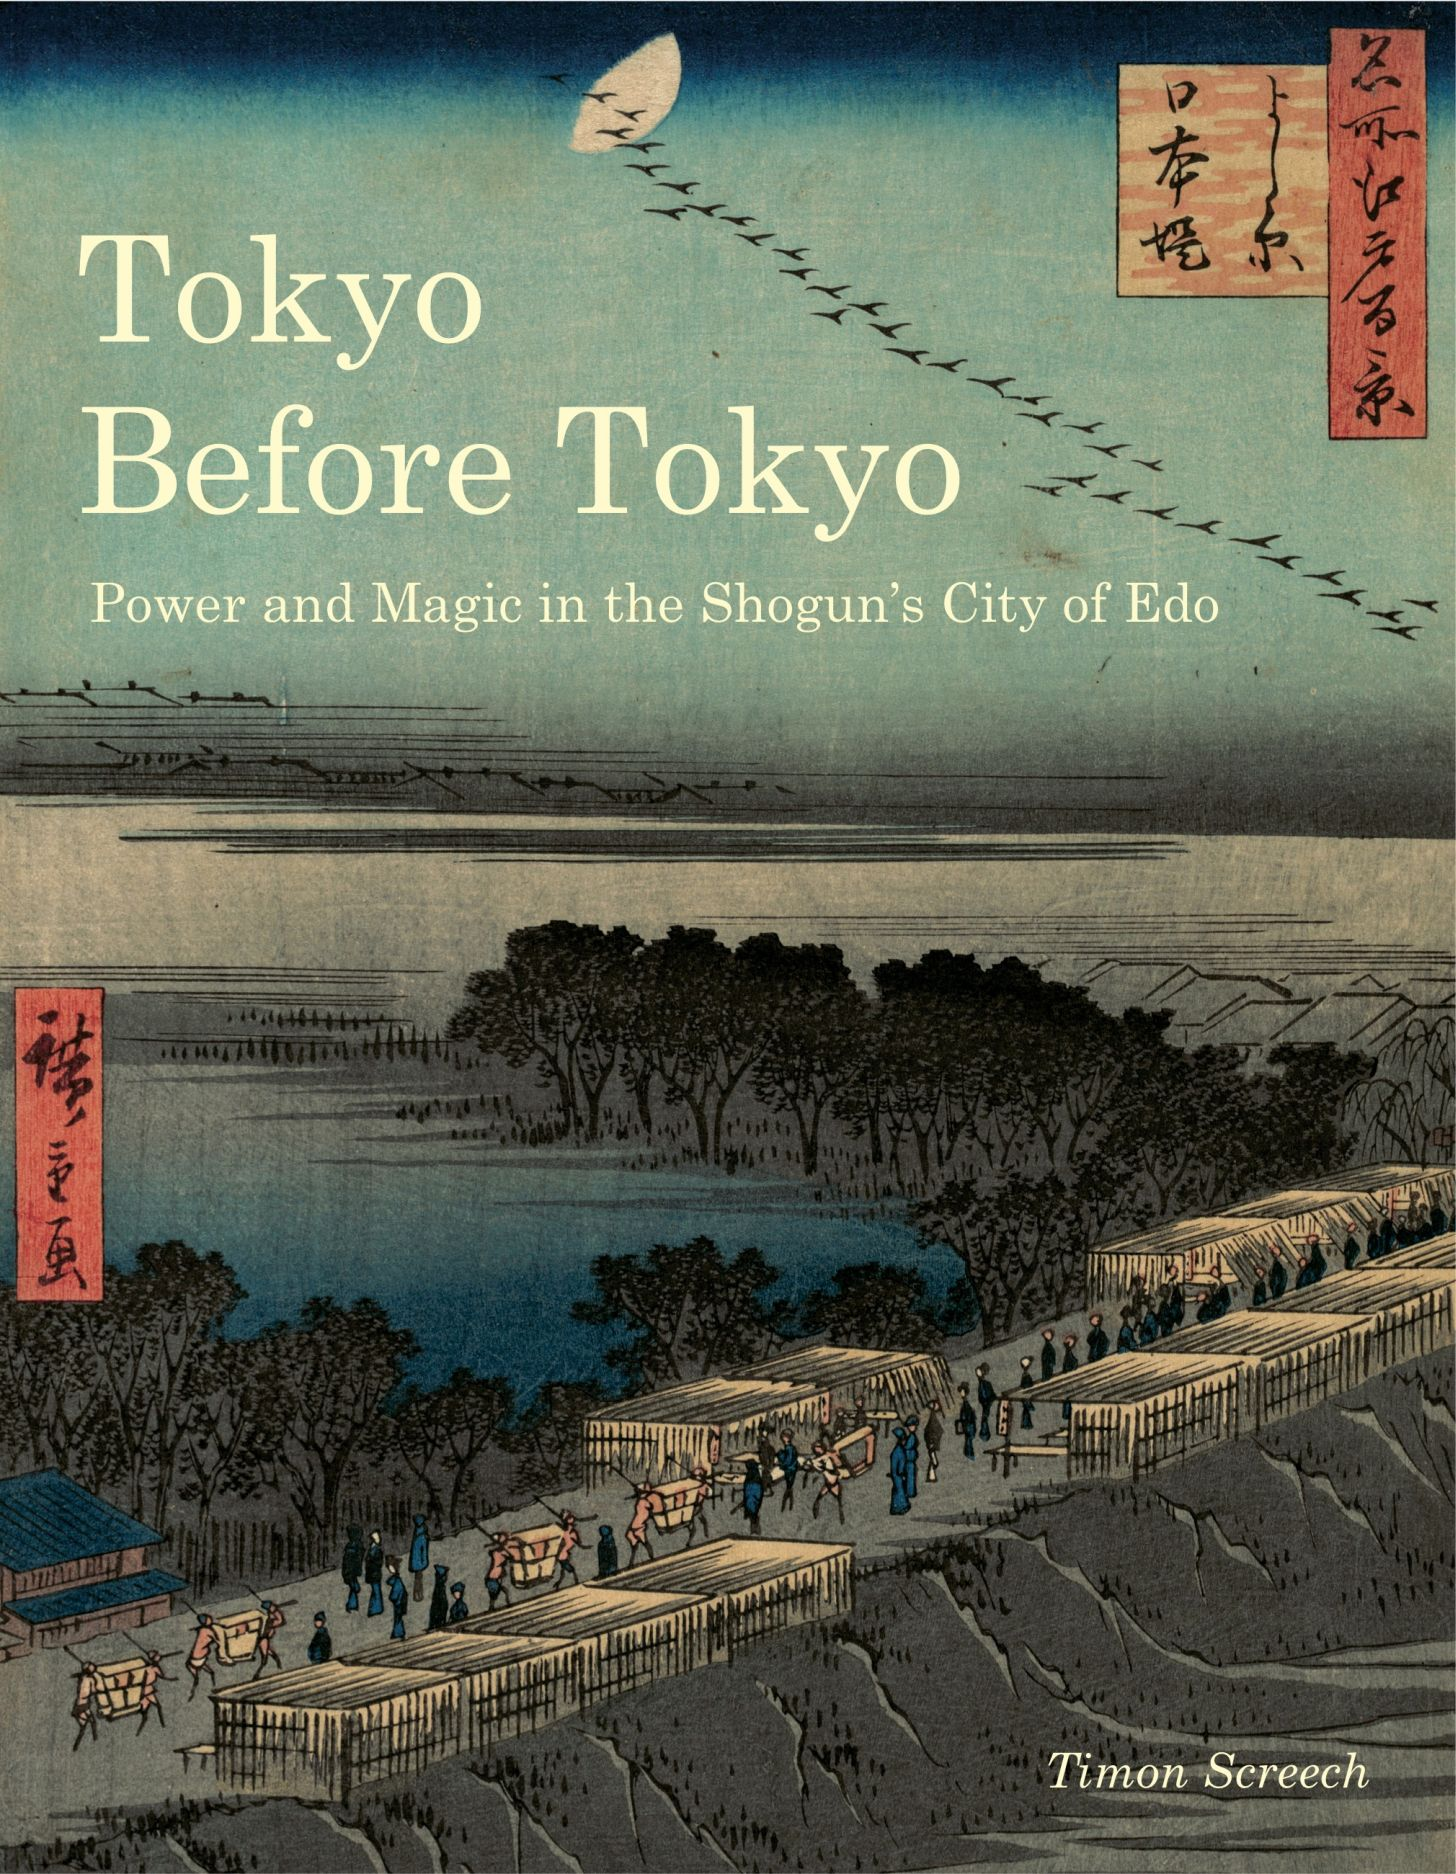 Tokyo Before Tokyo: Power and Magic in the Shogun's City of Edo